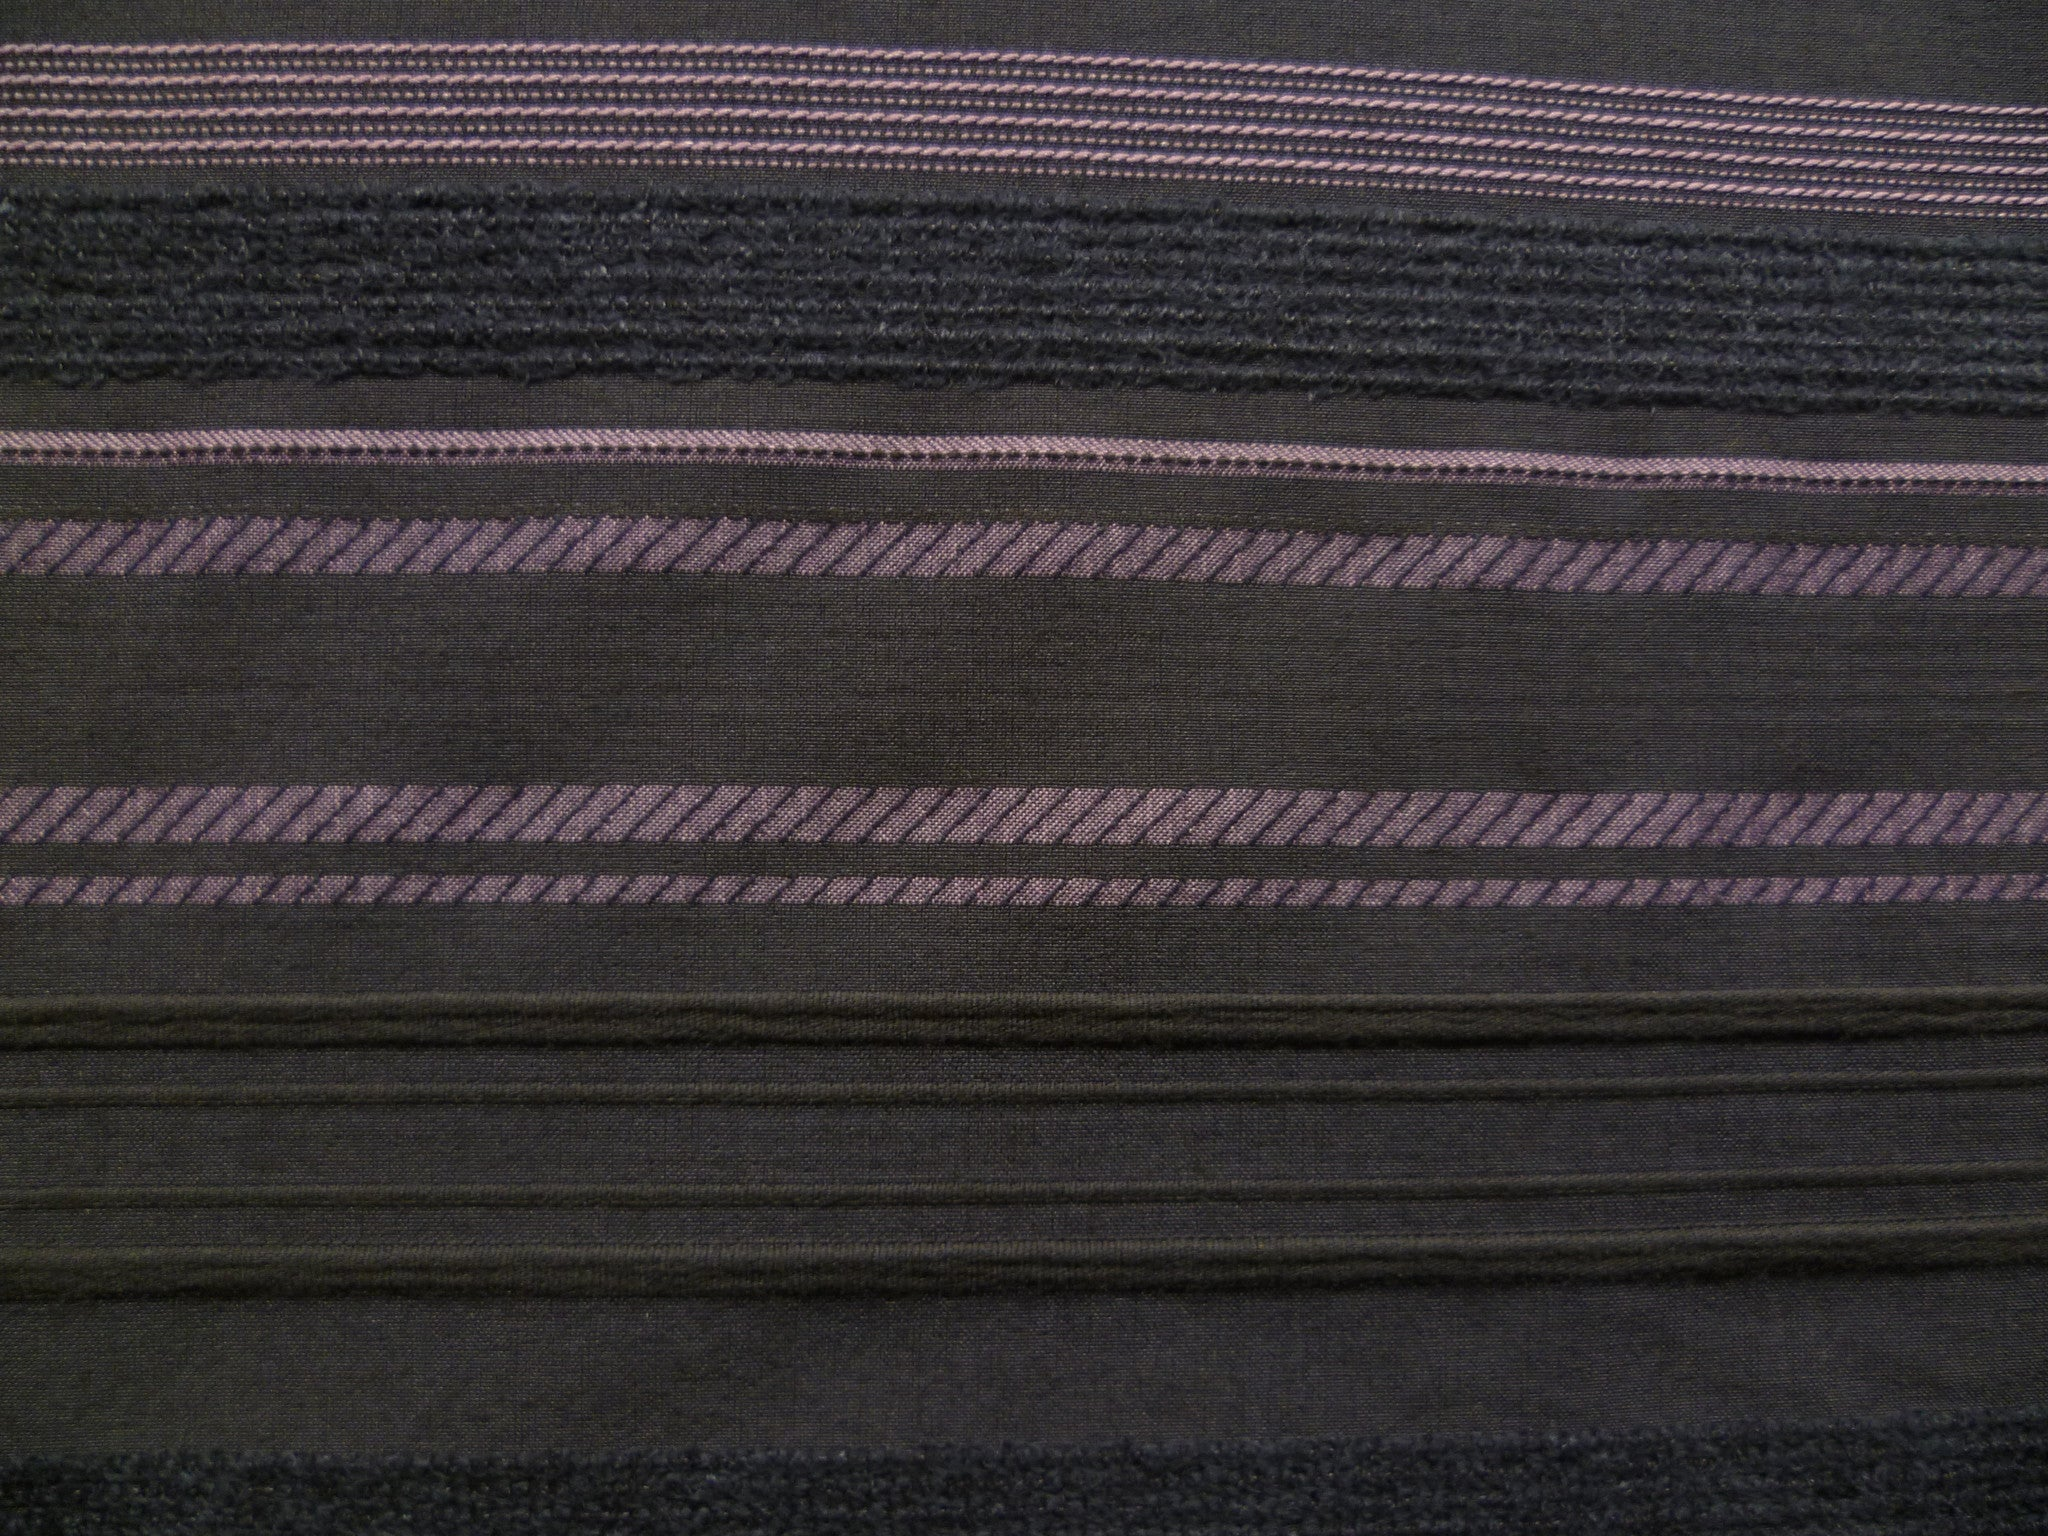 Purple, Grey, And Black Horizontal Stripes On A Black Background.